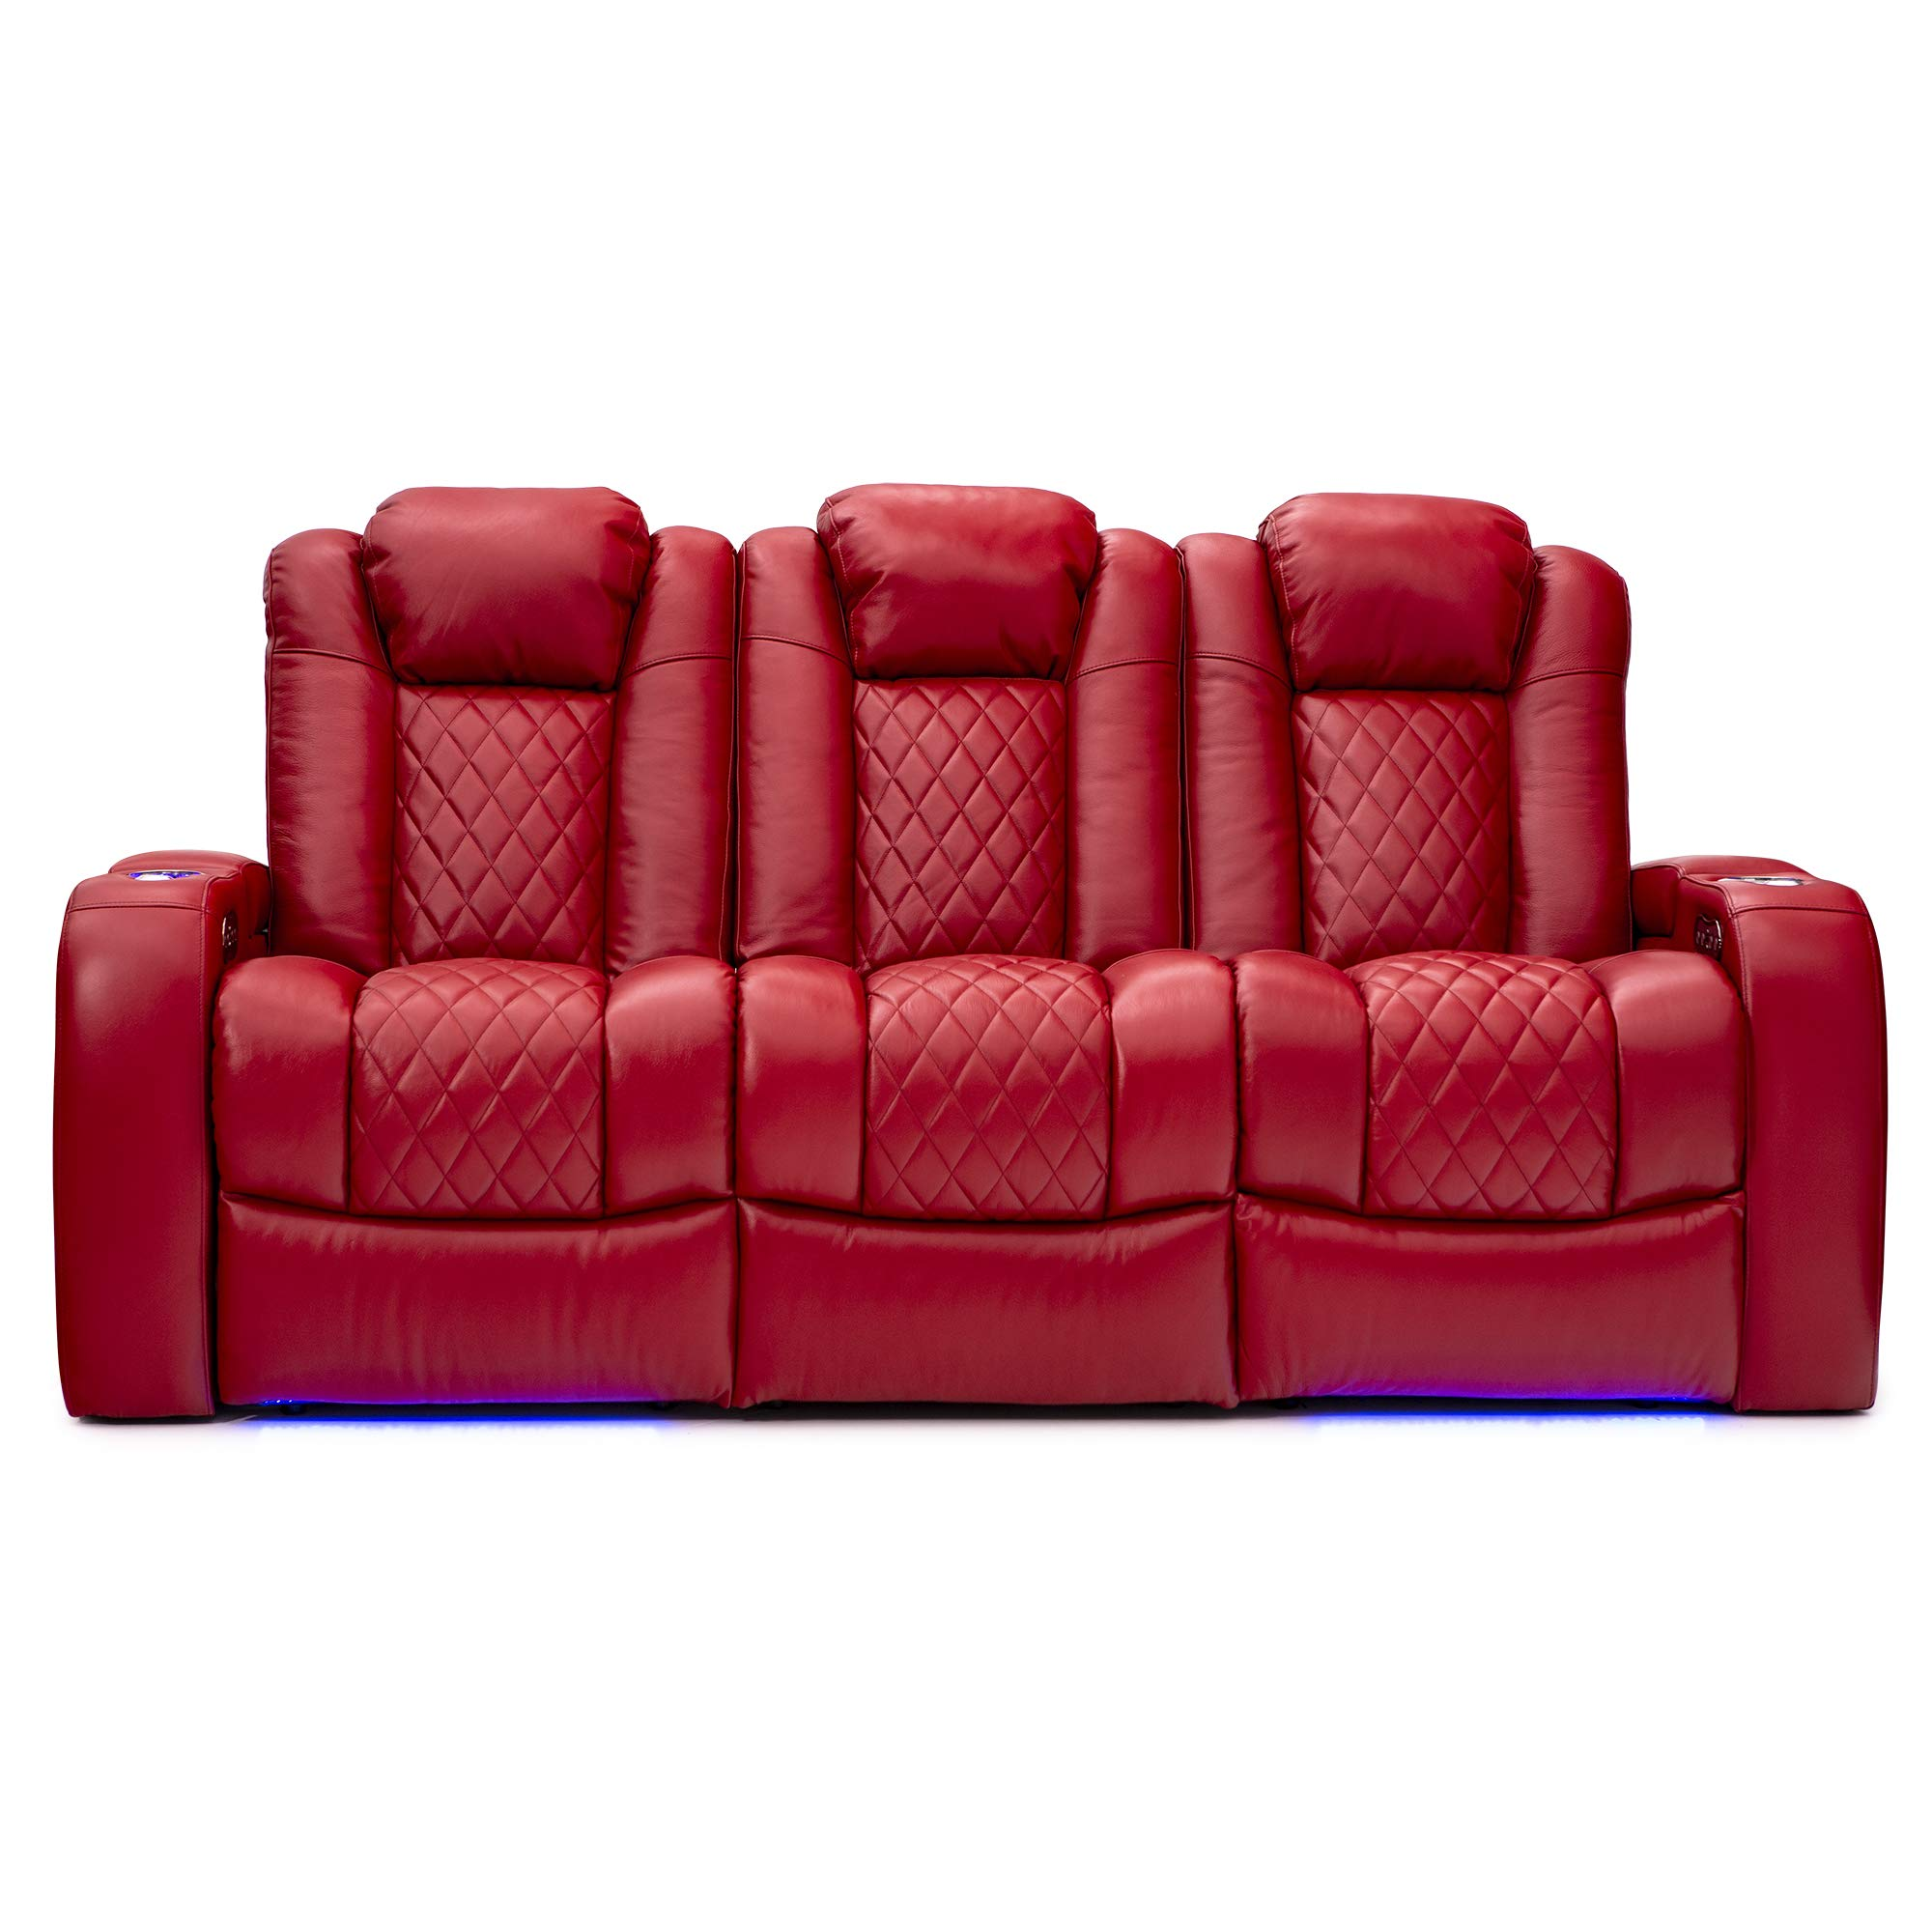 Seatcraft Anthem Home Theater Seating Leather Multimedia Power Recline Sofa with Drop-Down Table, Powered Headrests, Storage, and Cupholders (Red) by Seatcraft